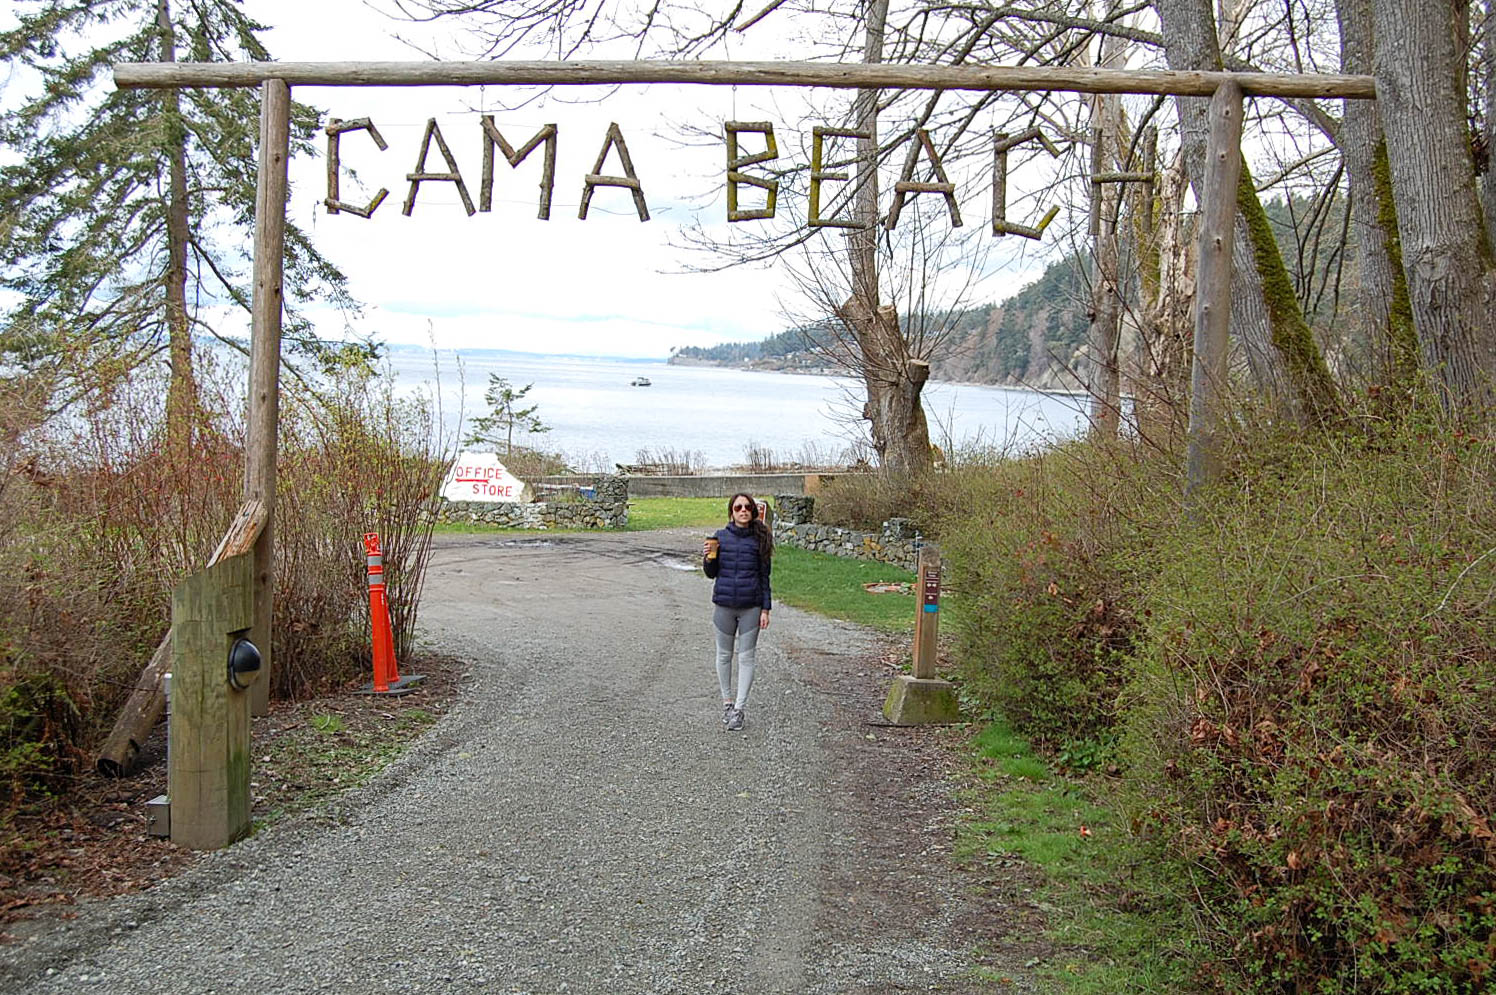 A Weekend Getaway to Camano Island